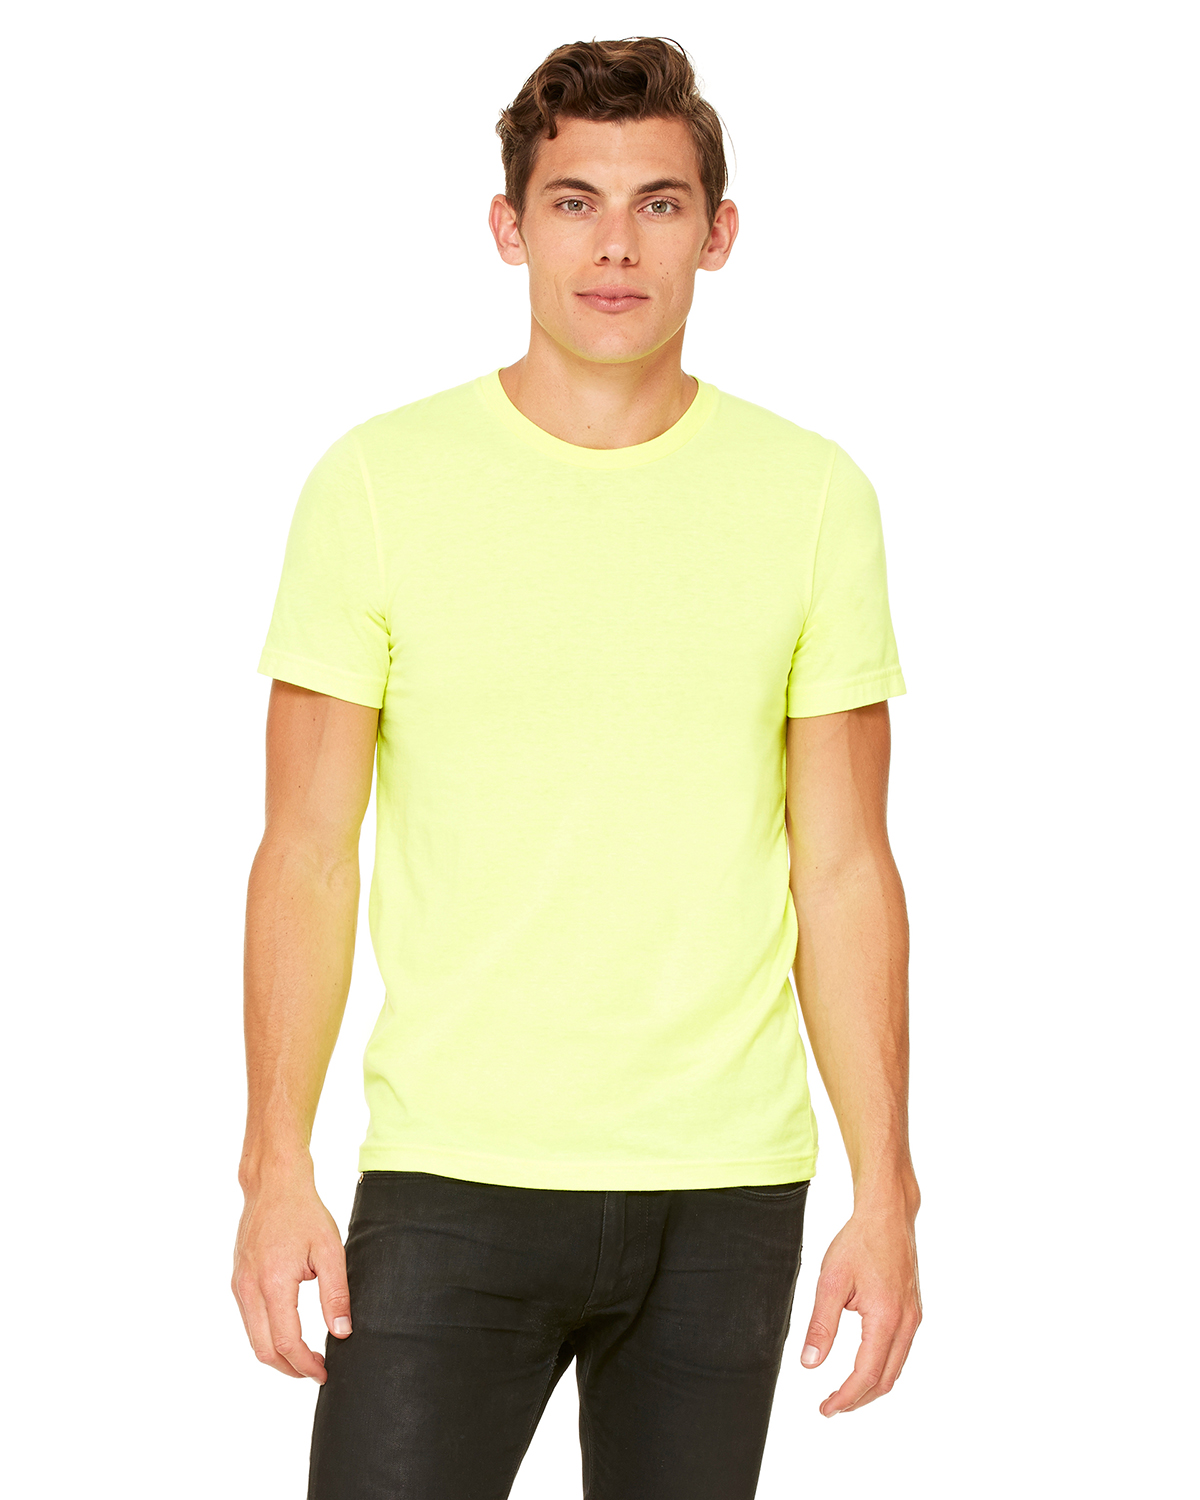 click to view NeonYellow